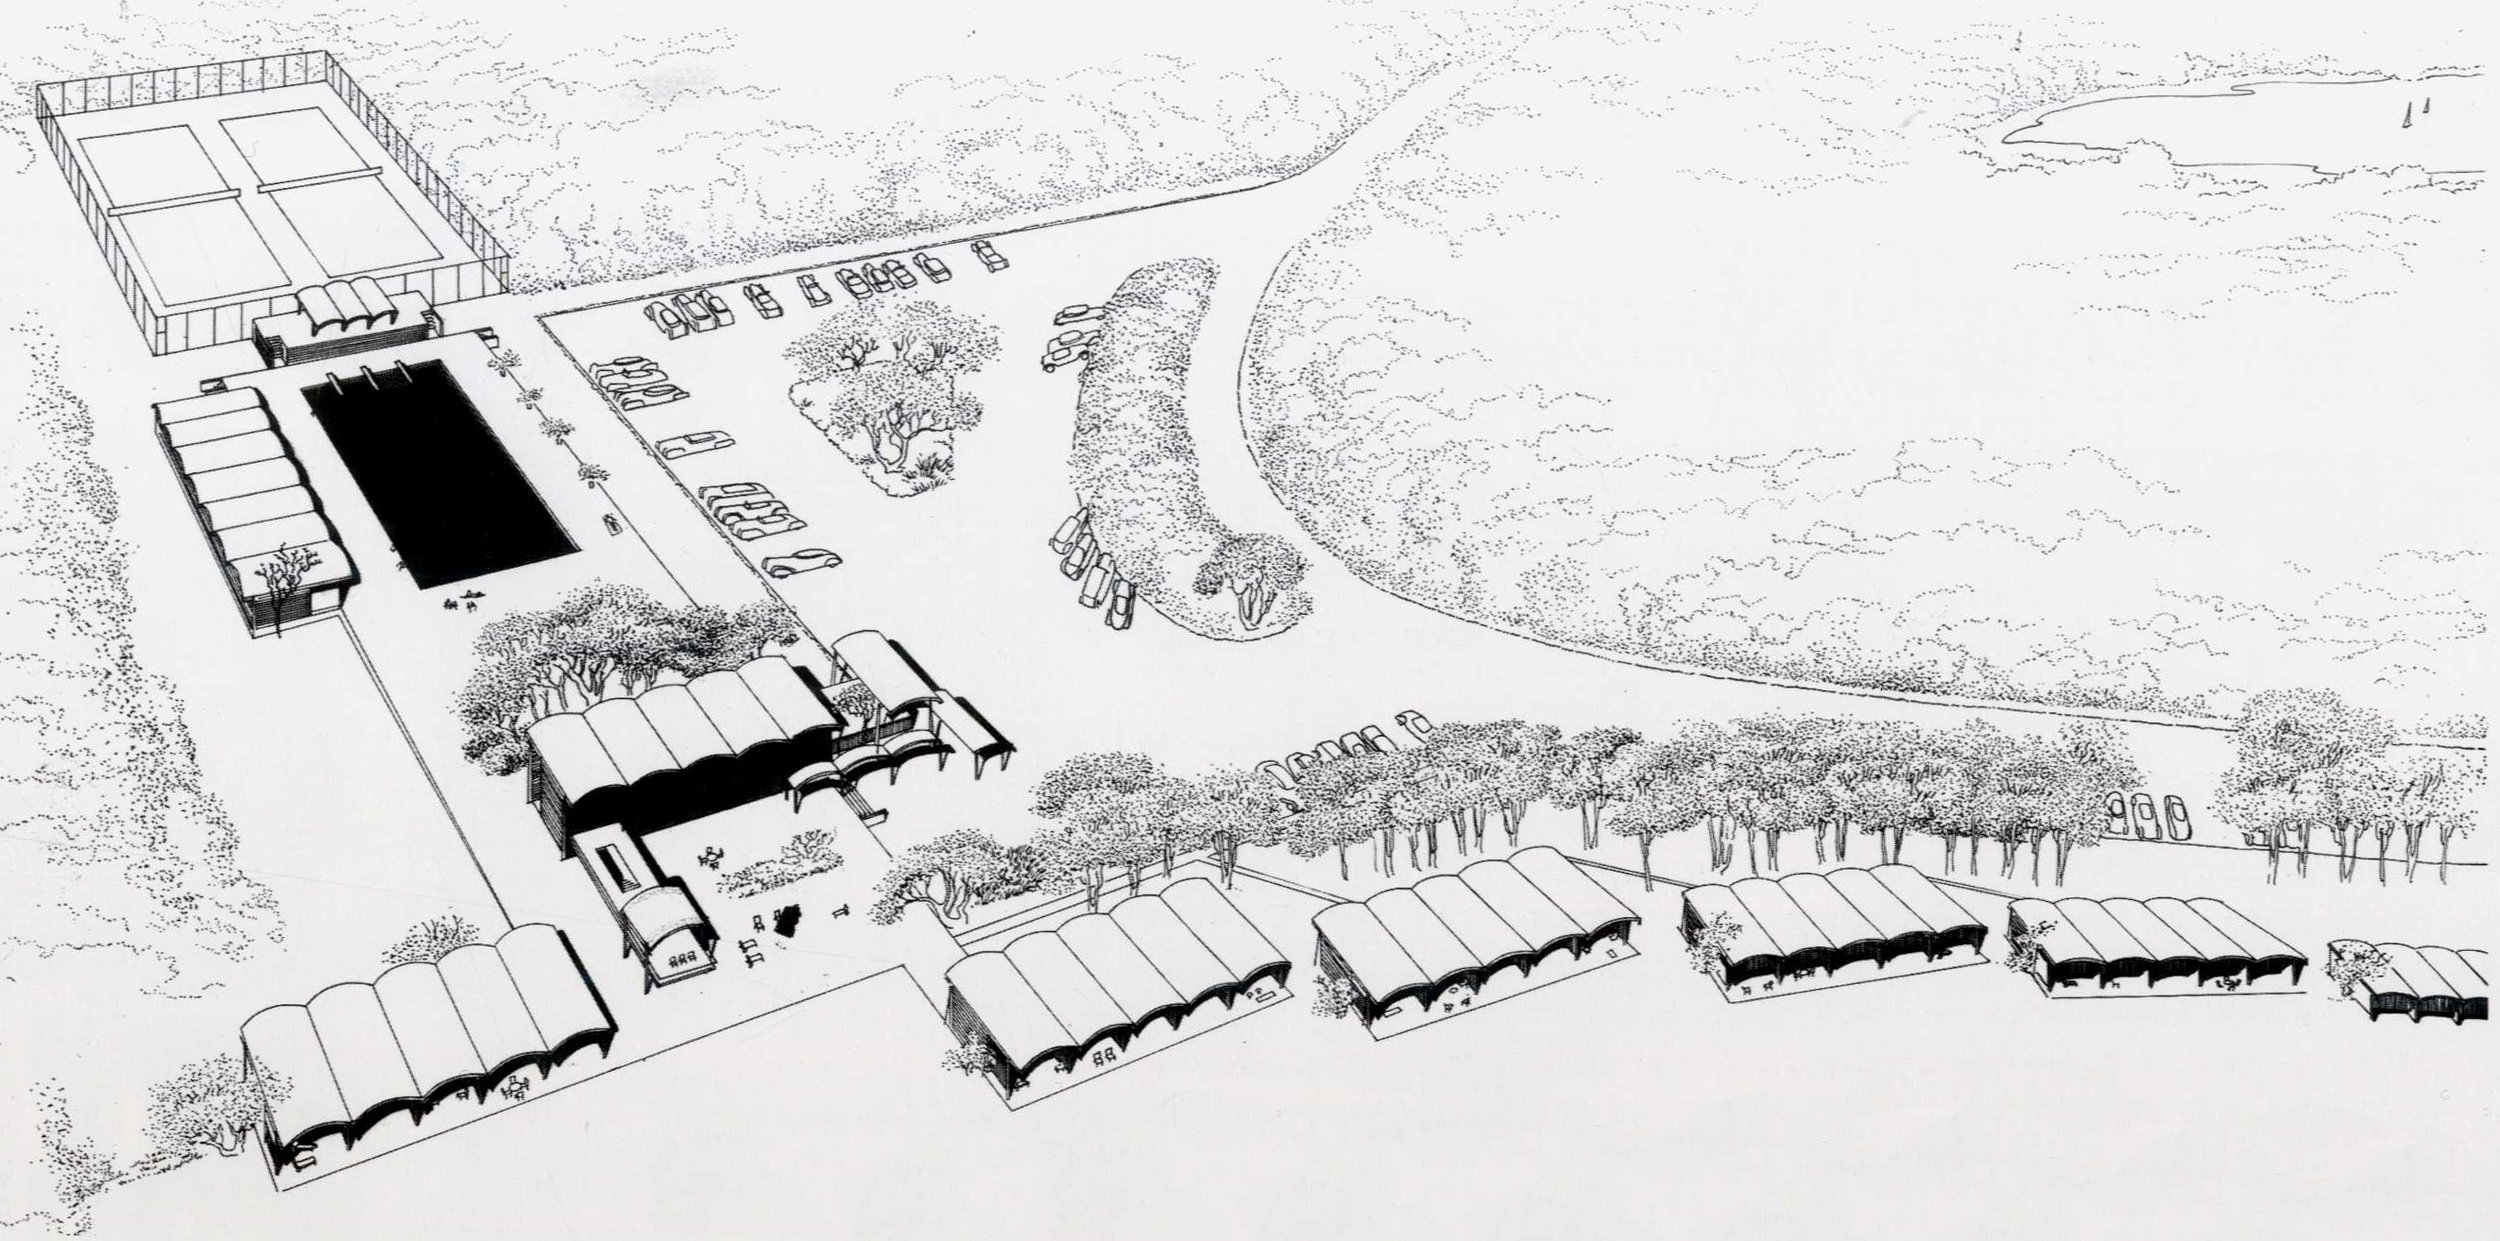 Rudolph's first proposal for the project. Image: Paul Rudolph Heritage Foundation Archives